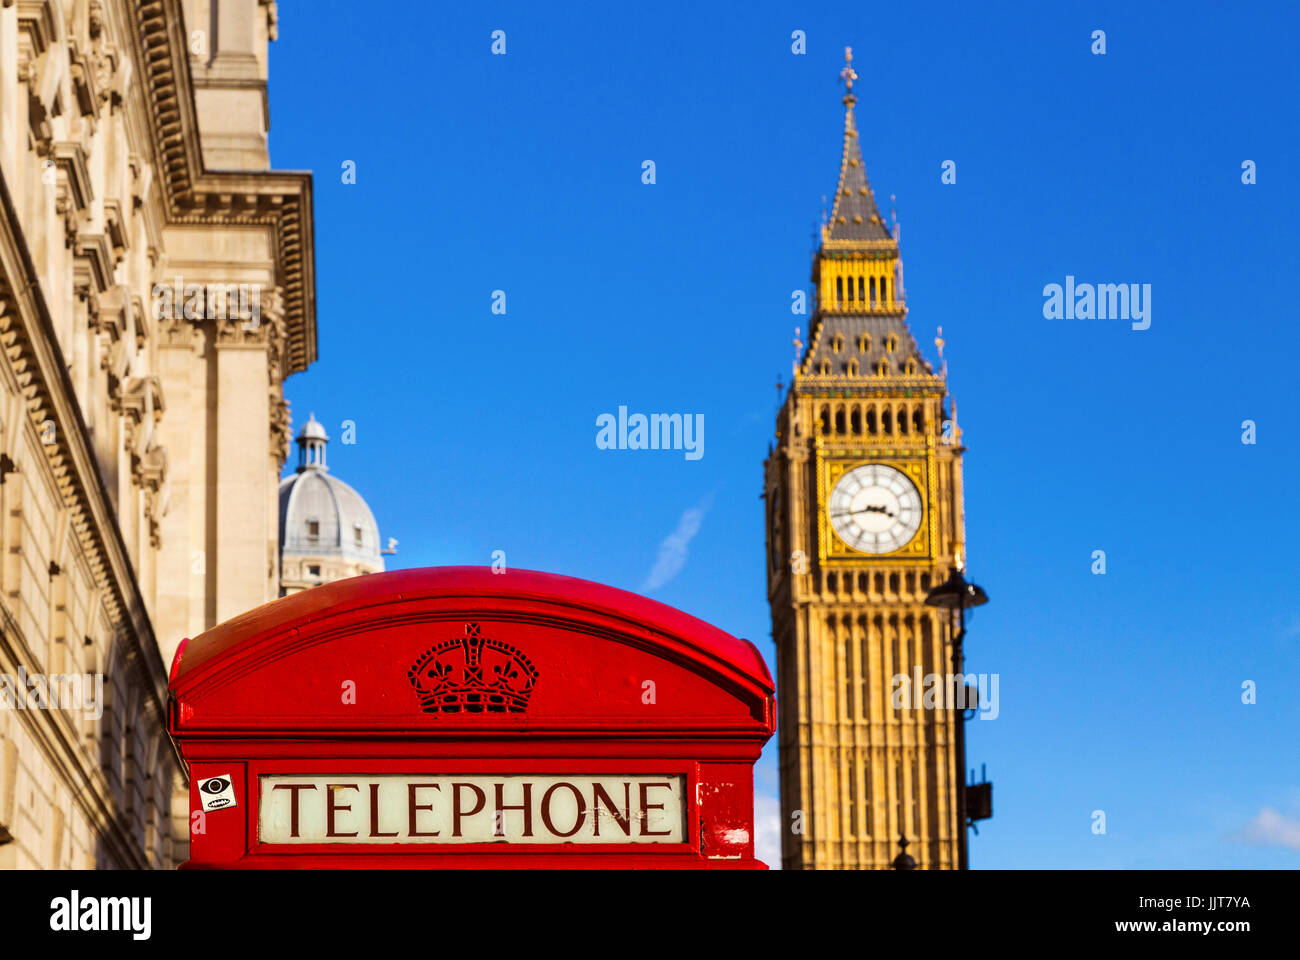 .London red telephone box and Big Ben - Stock Image